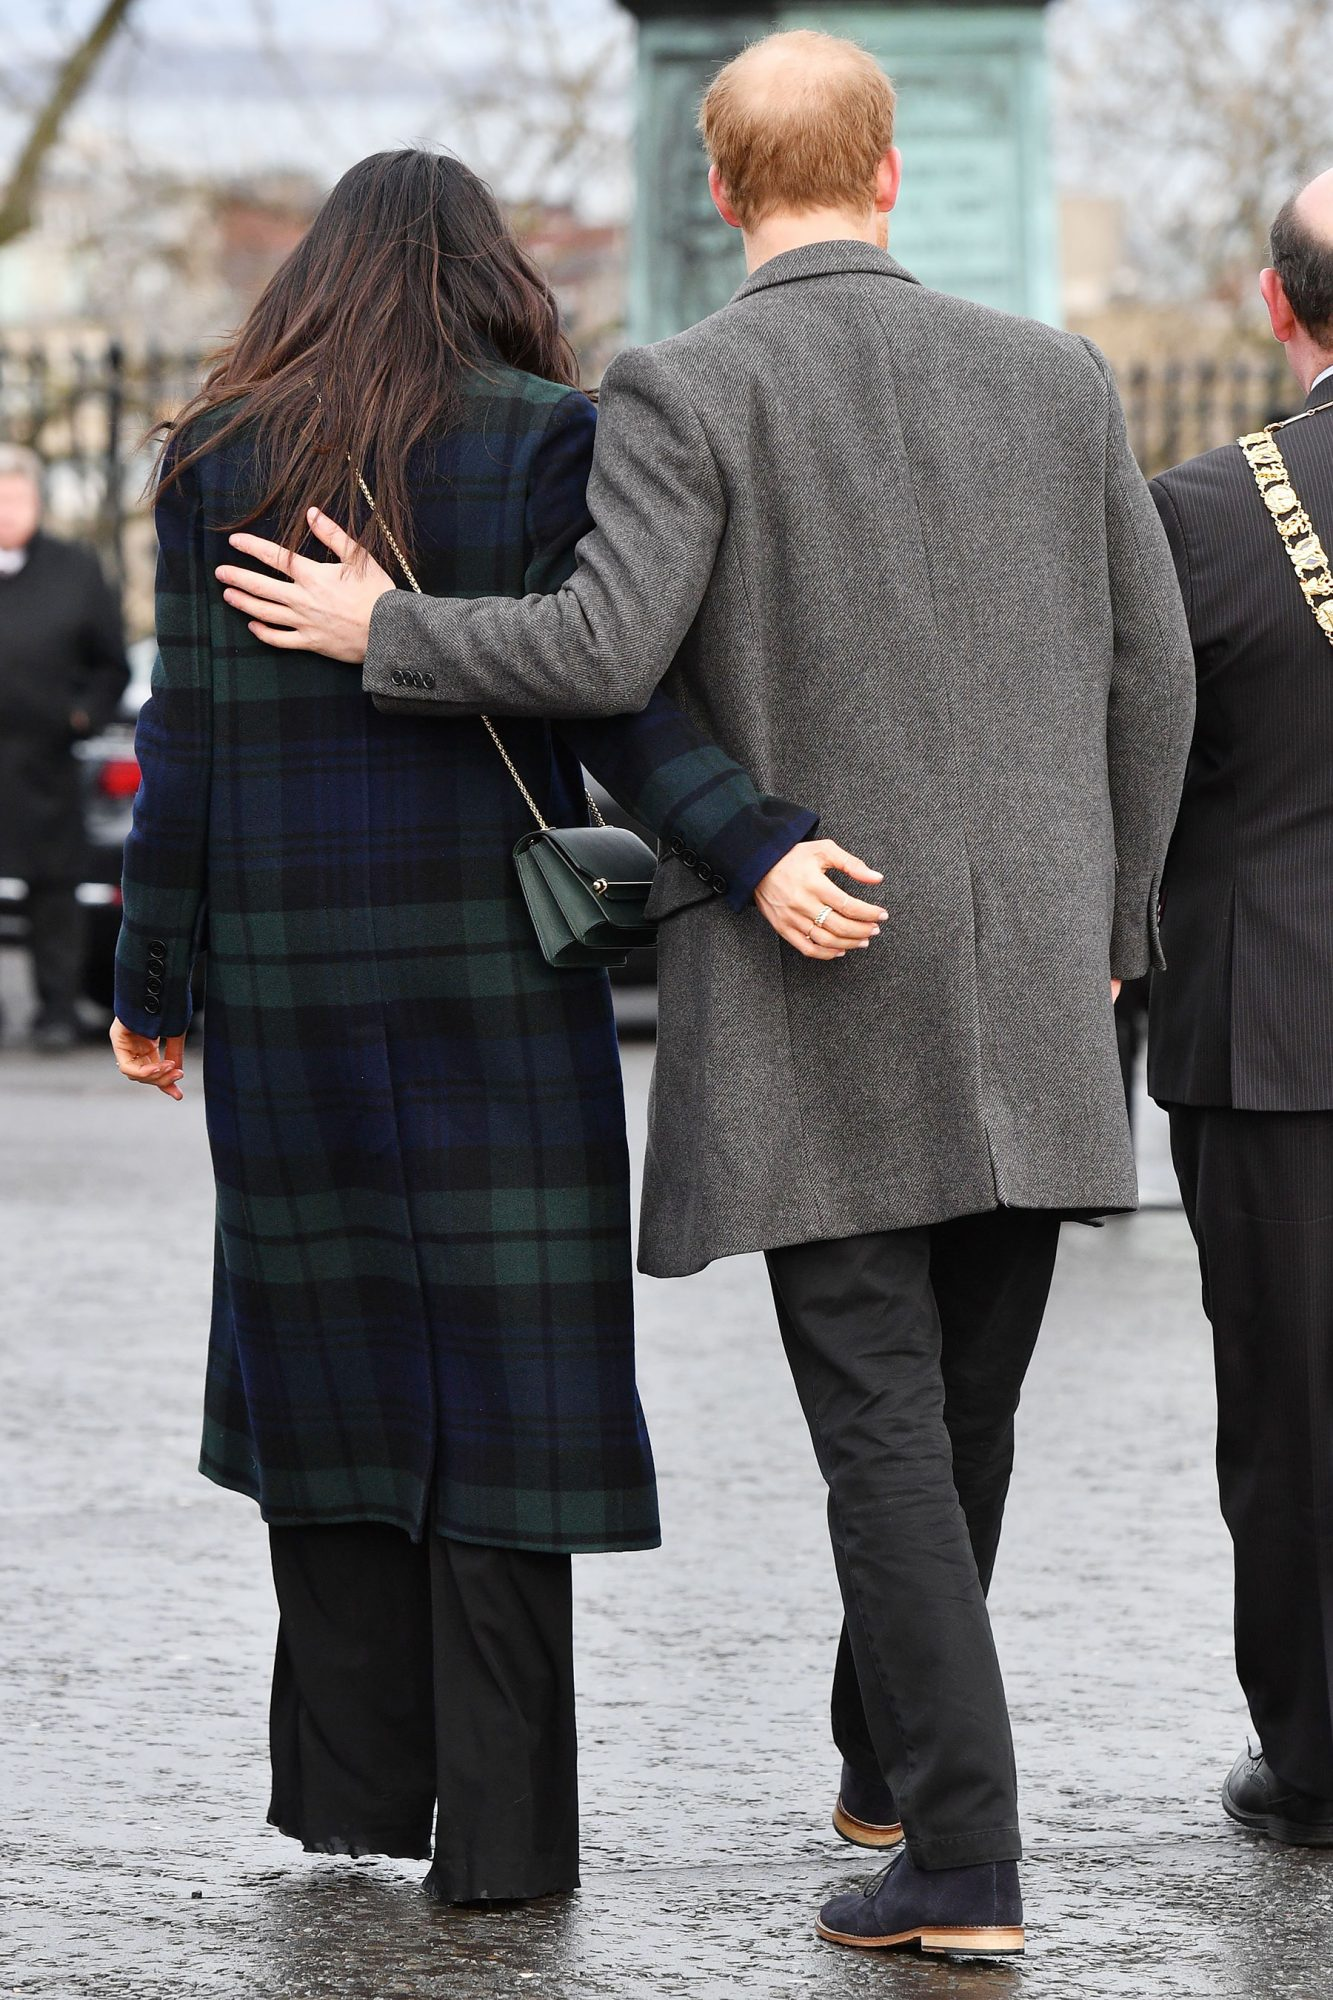 Prince Harry and Meghan Markle visit to Edinburgh, Scotland - 13 Feb 2018